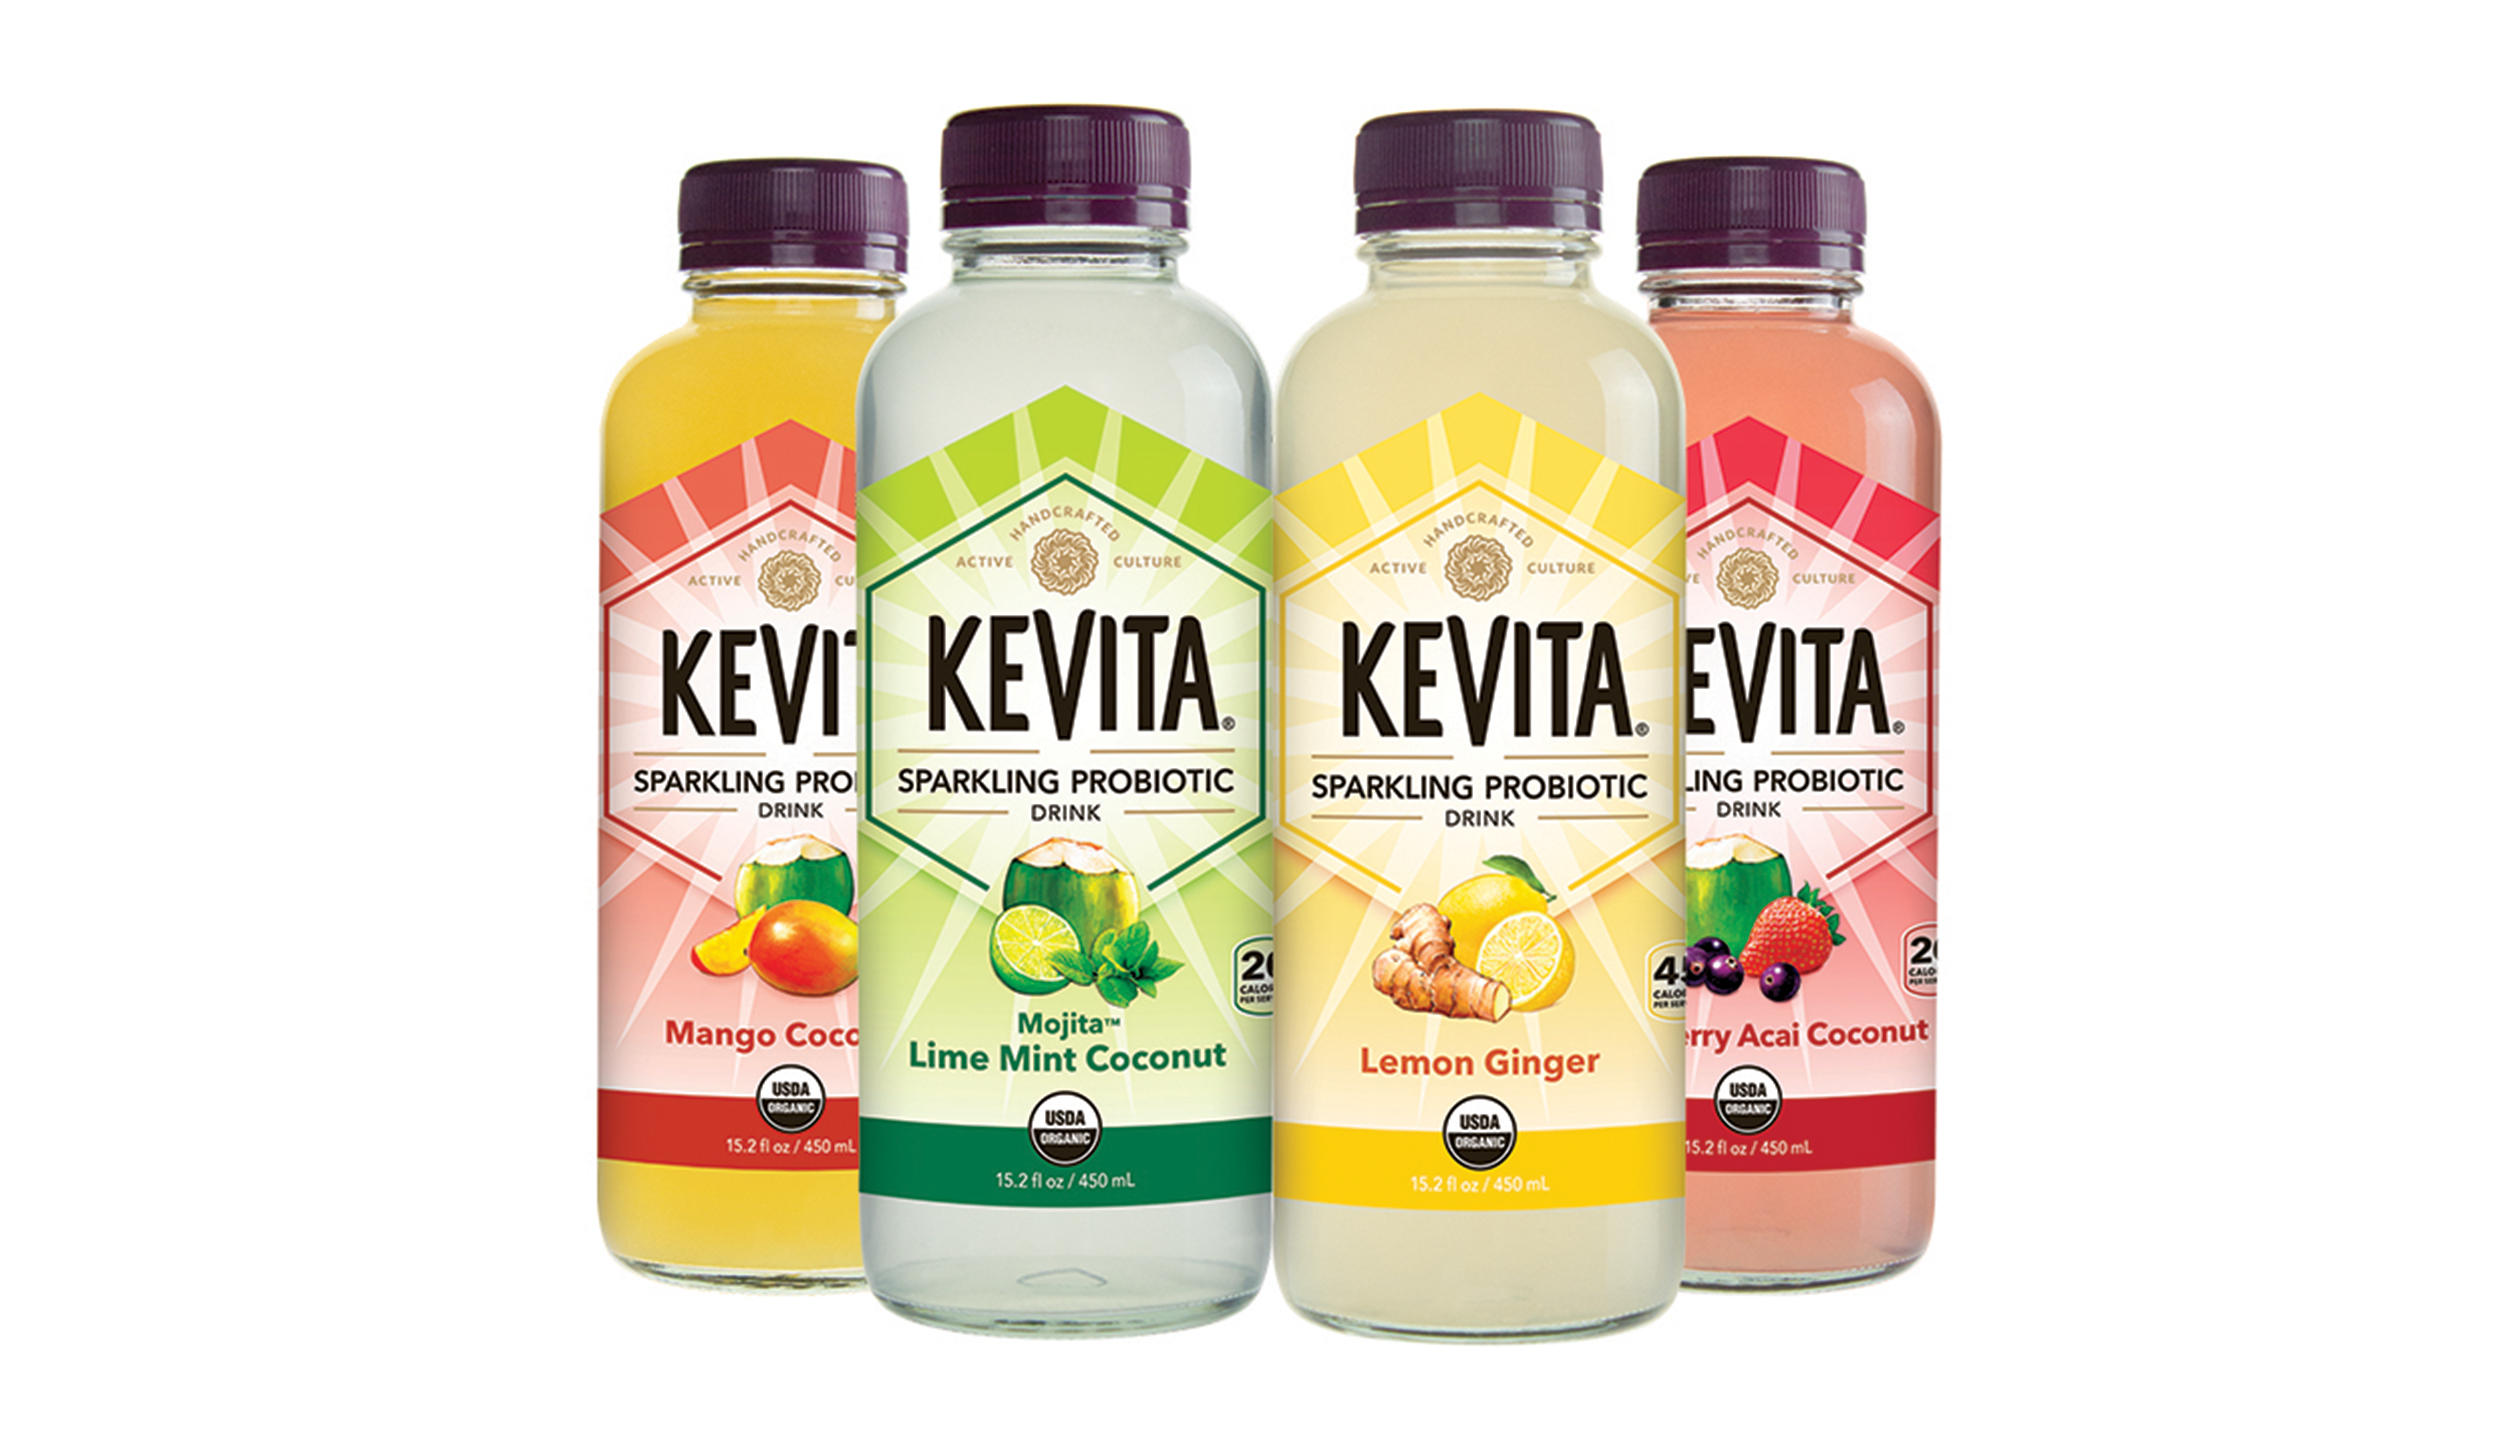 PepsiCo is fully acquiring KeVita, a leading North American maker of fermented probiotic and kombucha beverages.